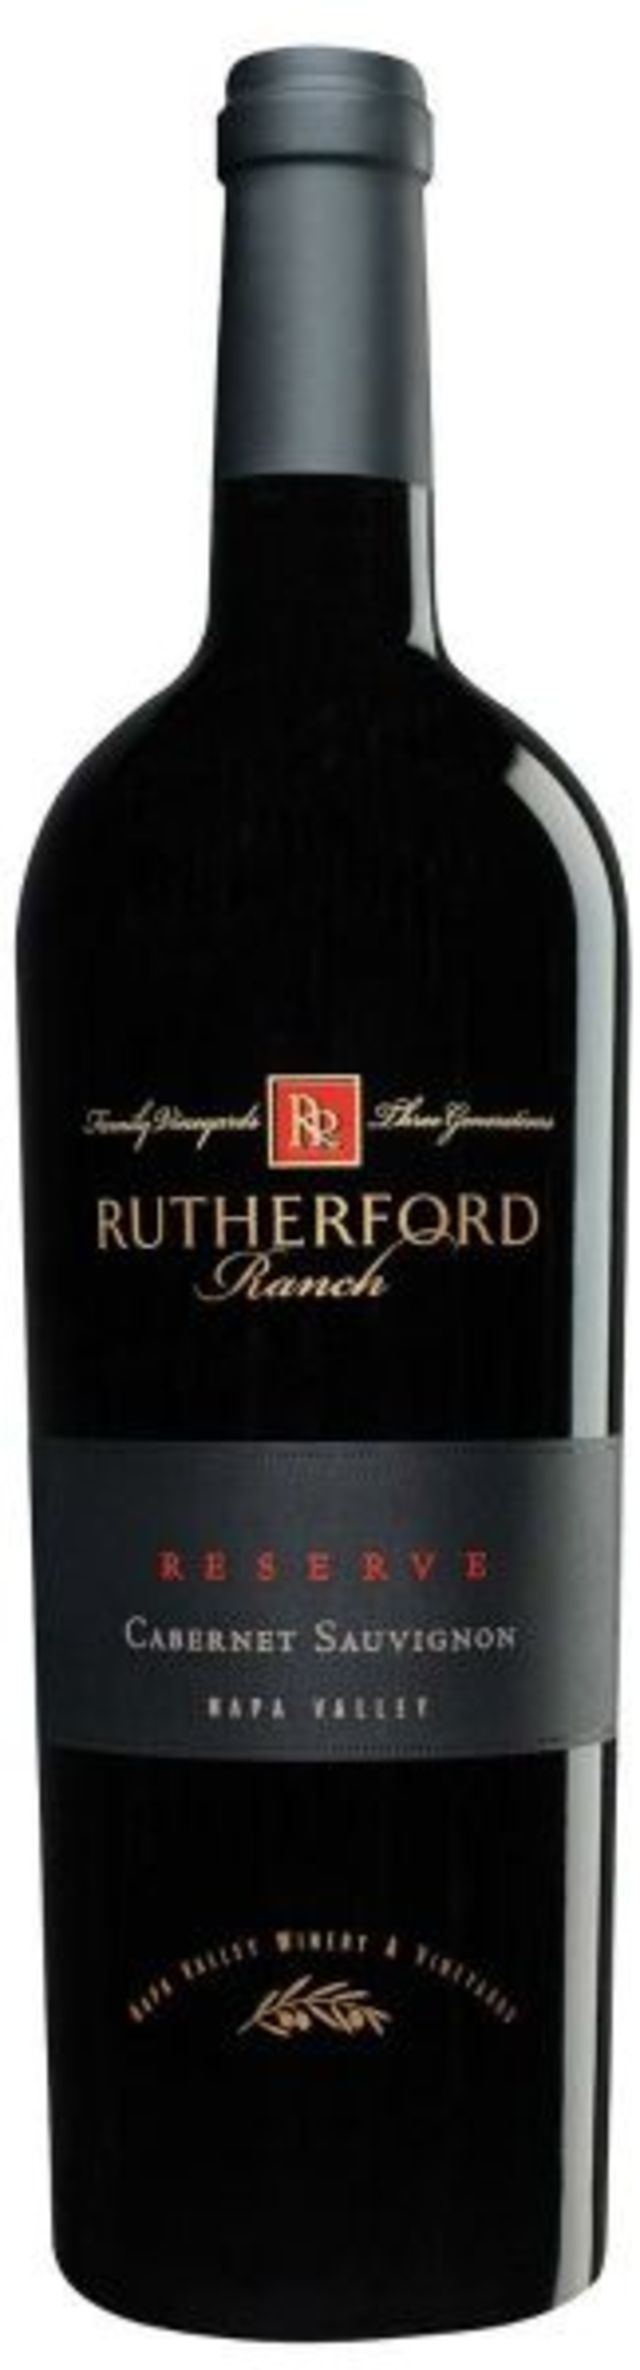 RUTHERFORD WINE COMPANY, NAPA VALLEY RESERVE CABER